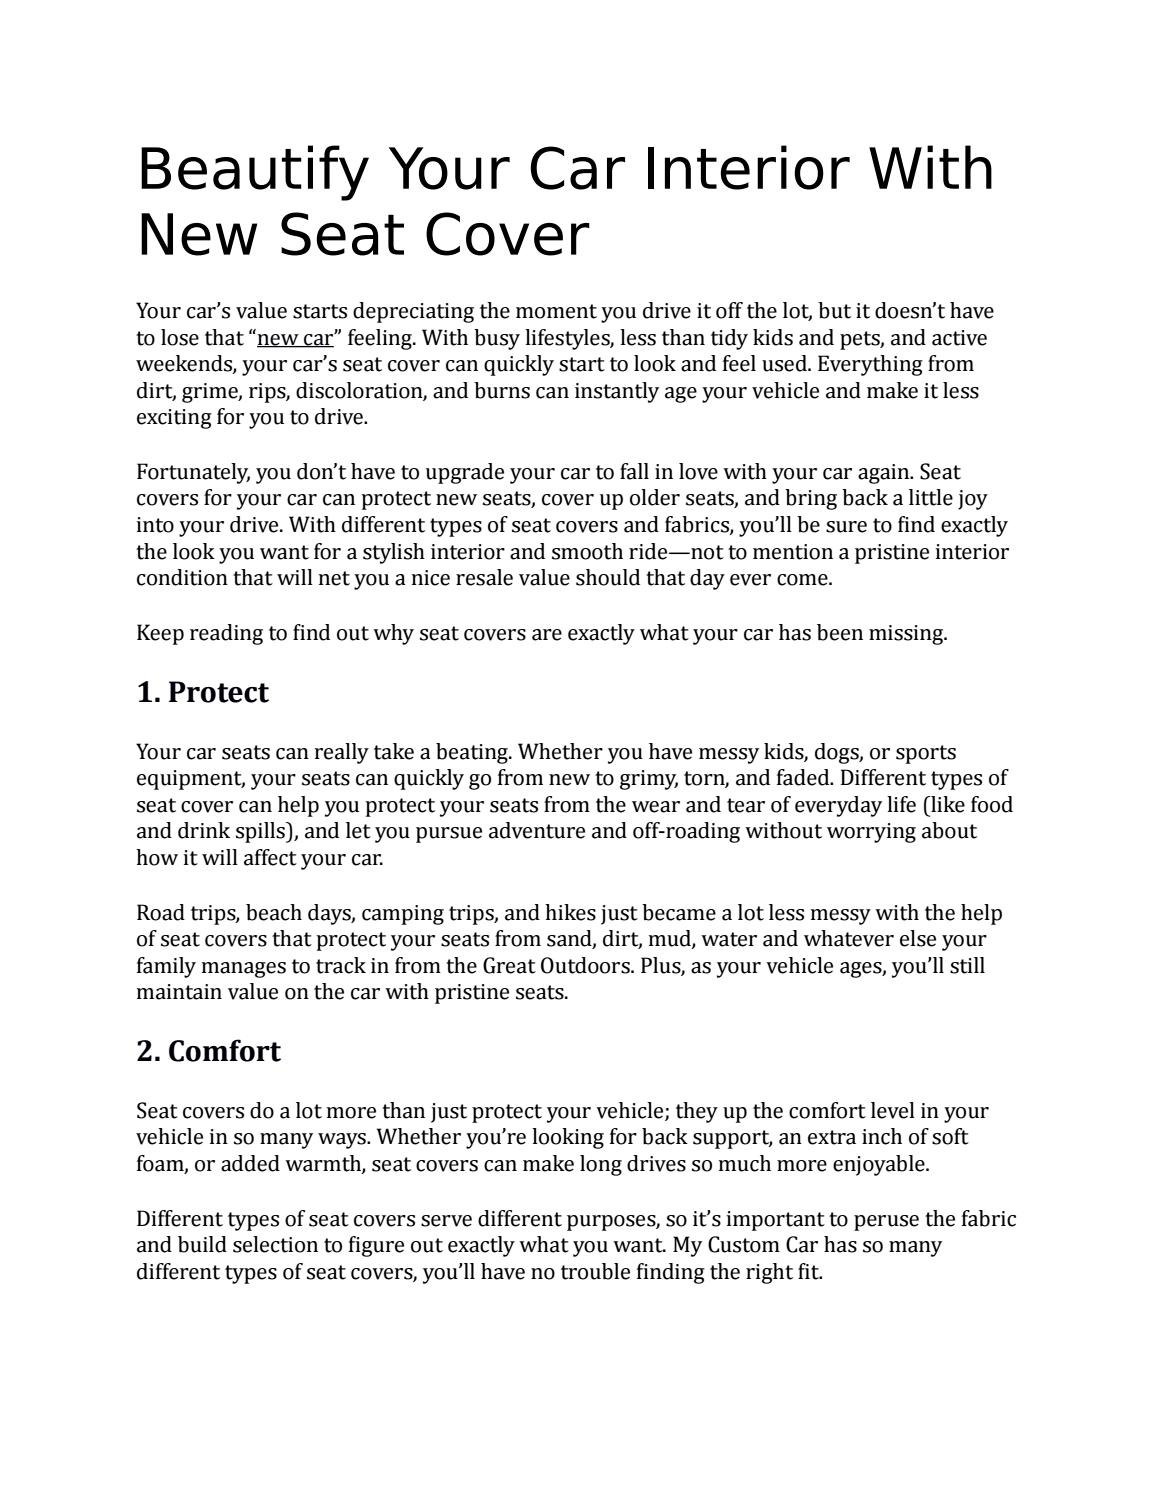 Beautify Your Car Interior With New Seat Cover by